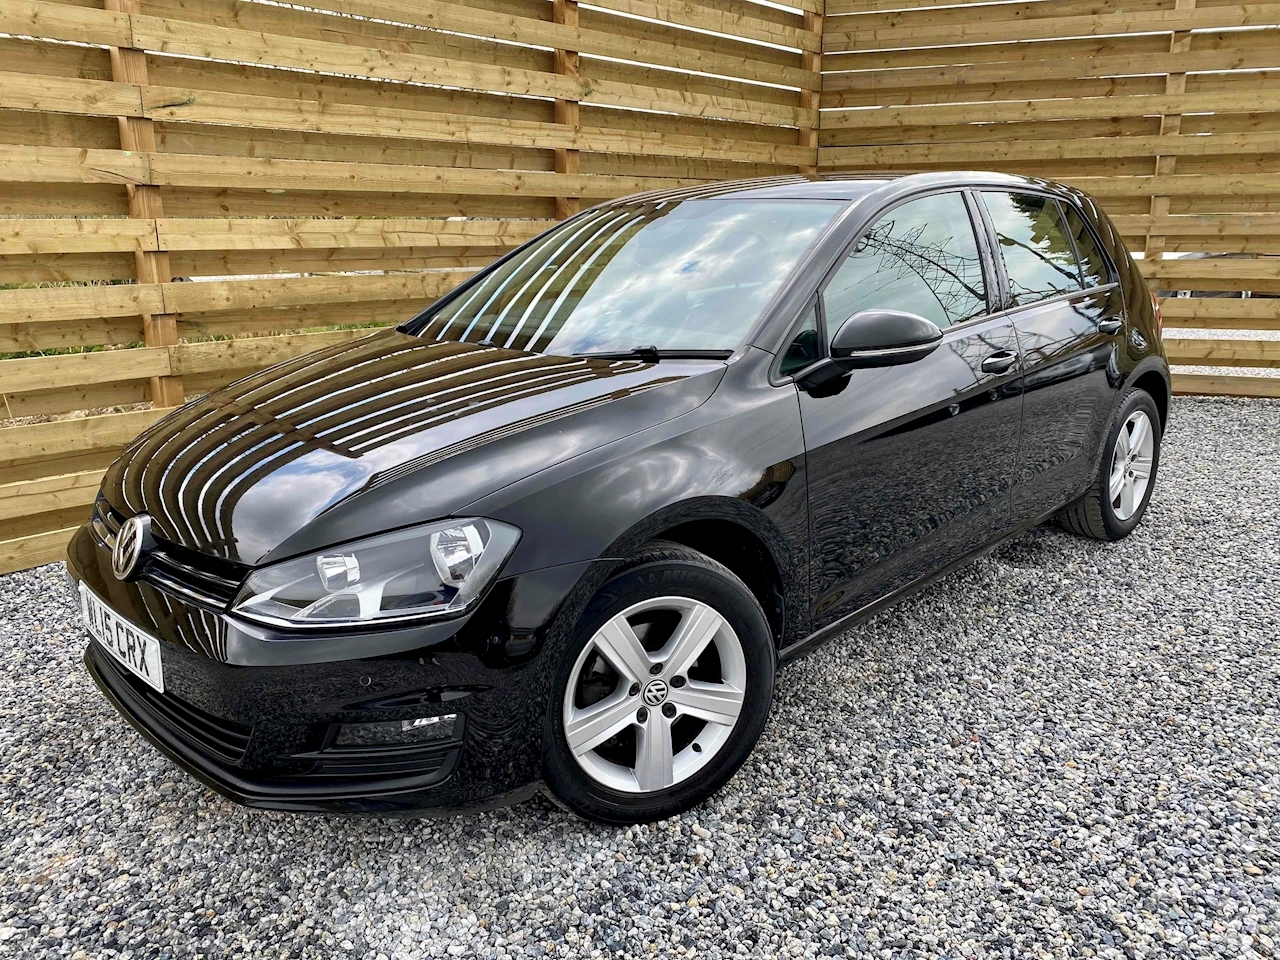 Golf TDI BlueMotion Tech Match - Dab Radio - Cruise Control - A/C - Clean Example 1.6 5dr Hatchback Manual Diesel